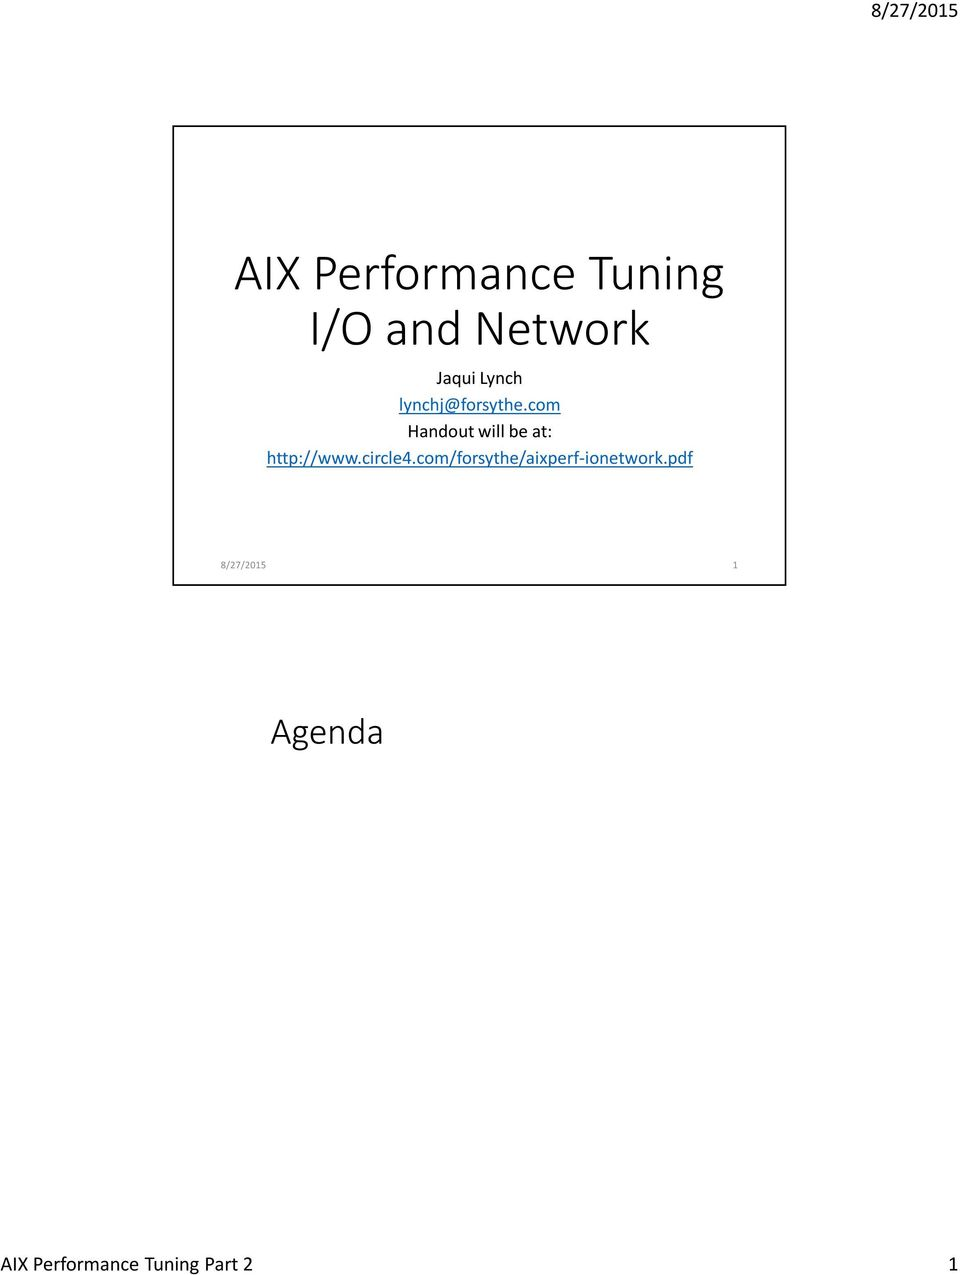 Aix Performance Tuning I O And Network Pdf Fan Wiring Diagram Http Wwwfilemountcom 2009 03 Systemwiring Com Forsythe Aixperf Ionetwork